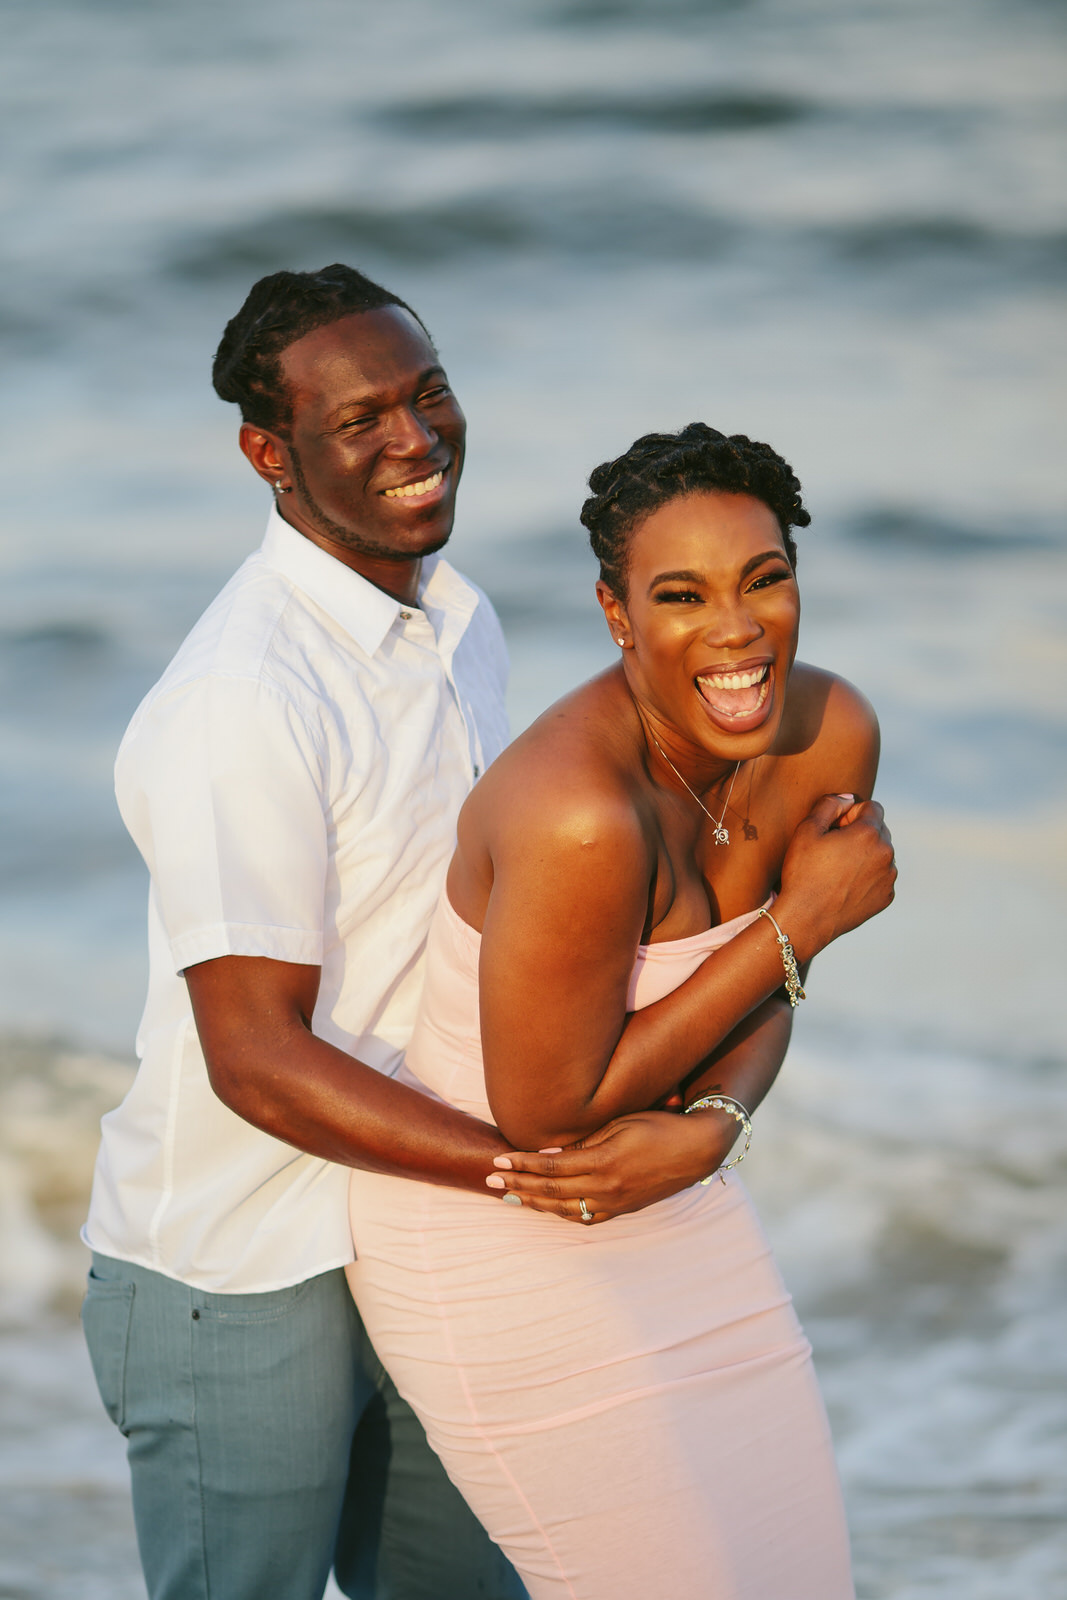 beachy-engagement-portraits-fort-lauderale-tiny-house-photo-wedding-photographer-35.jpg